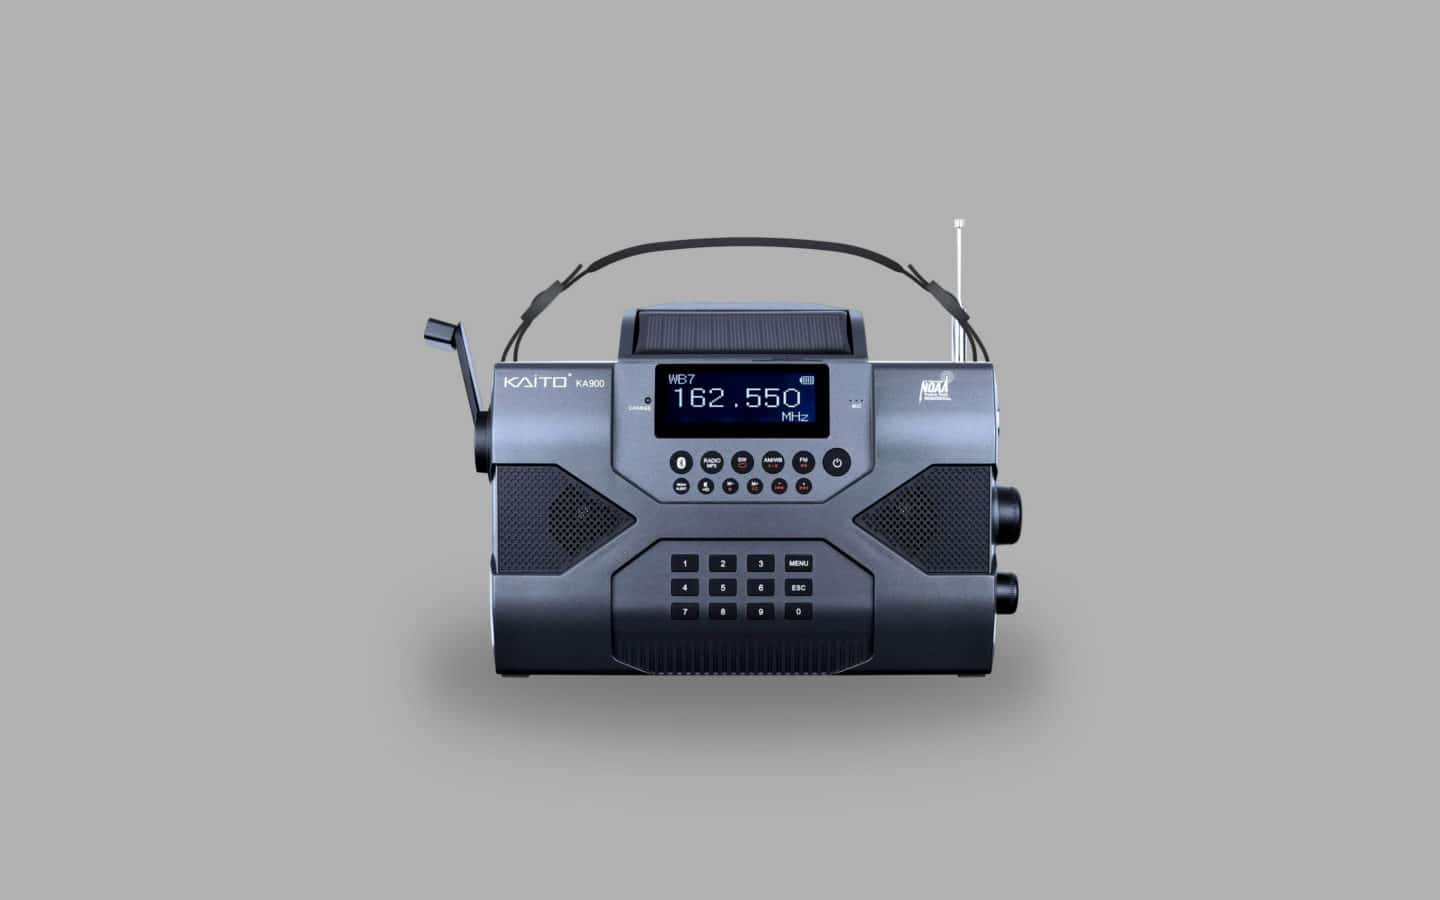 Best Shortwave Radio 9